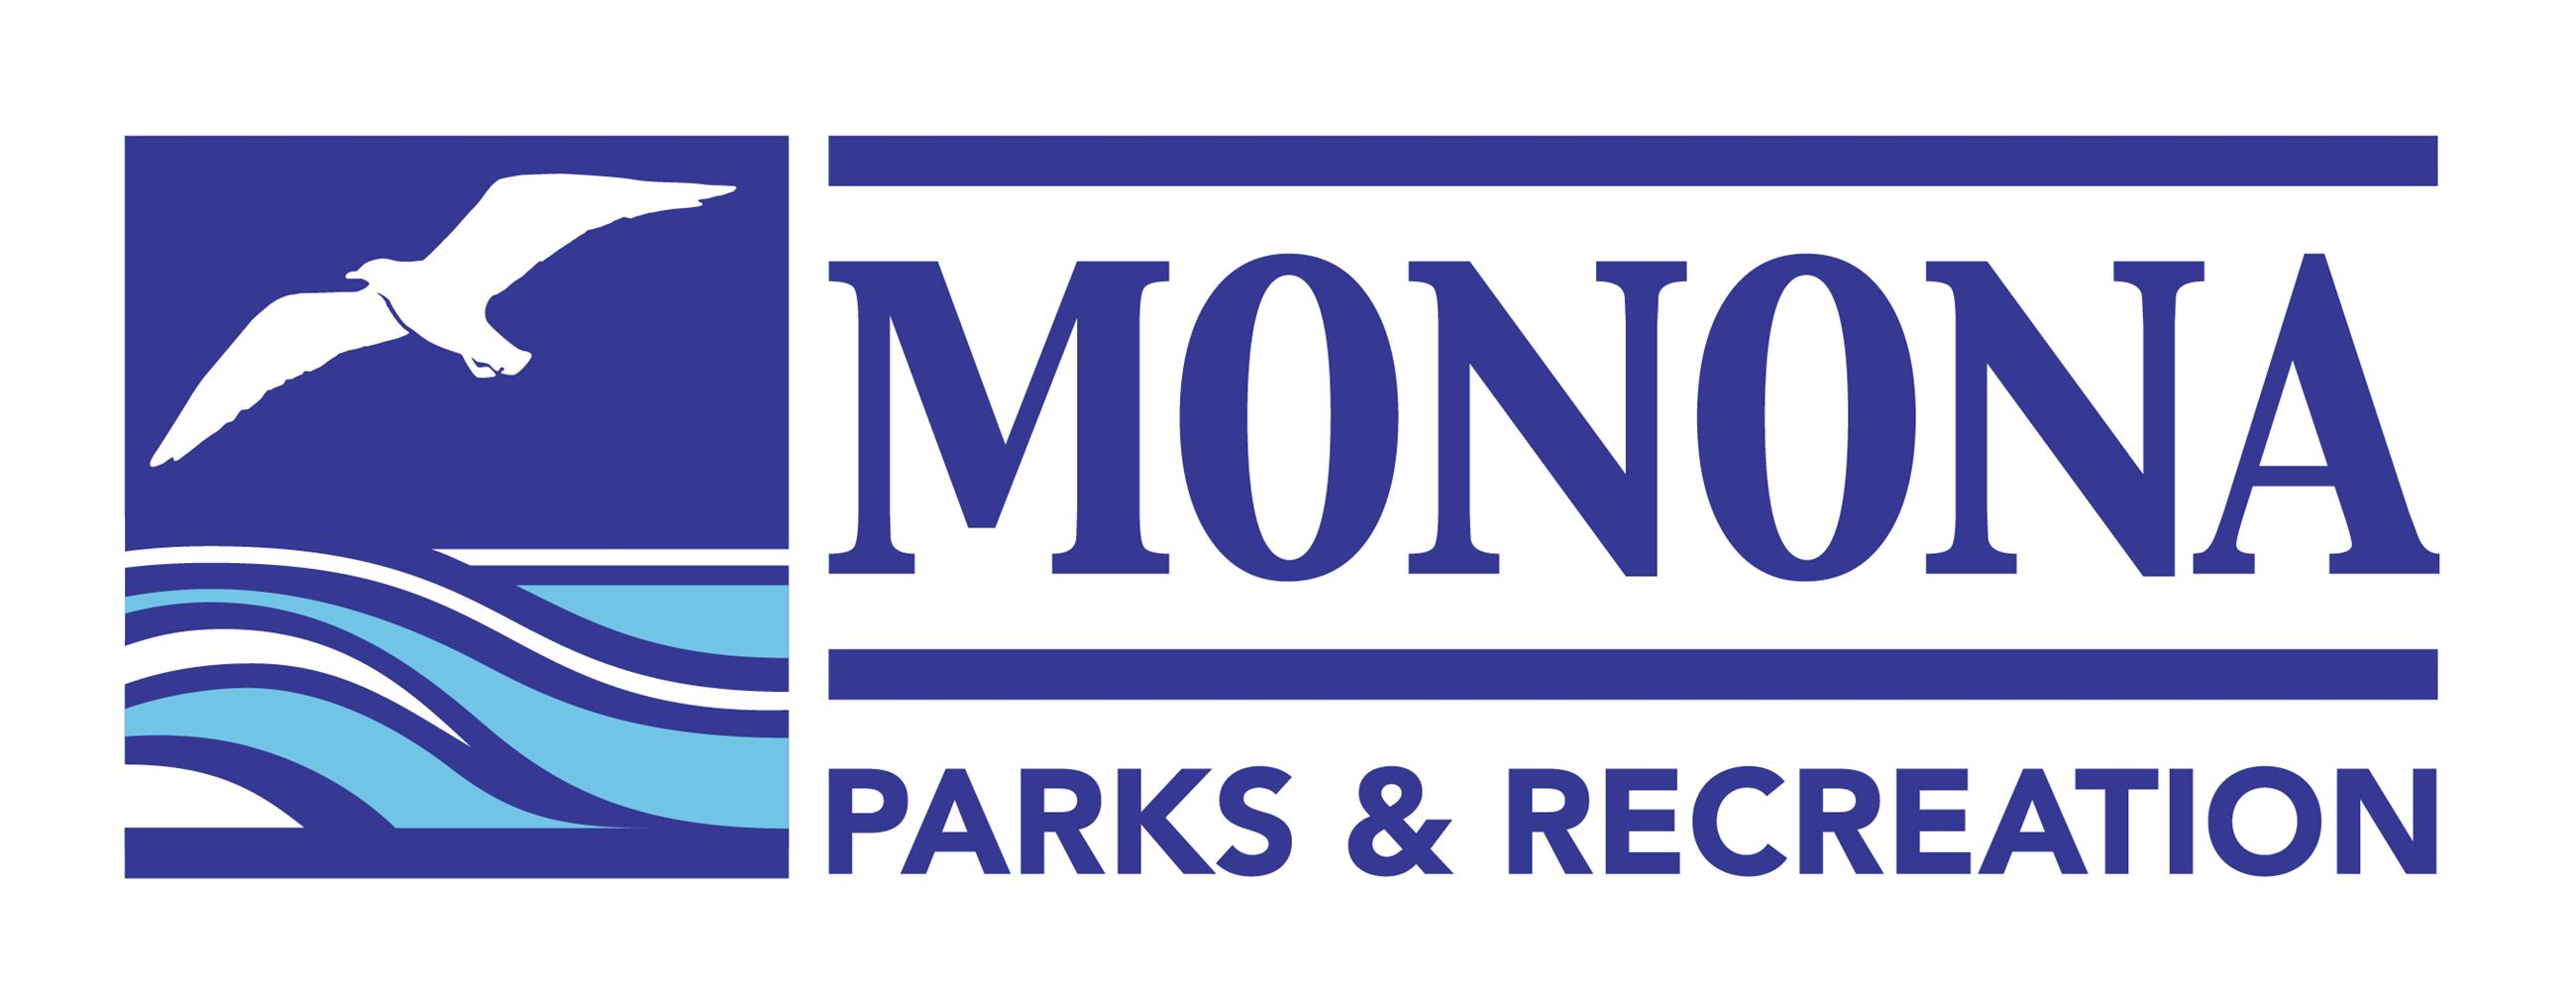 Monona Parks & Recreation logo